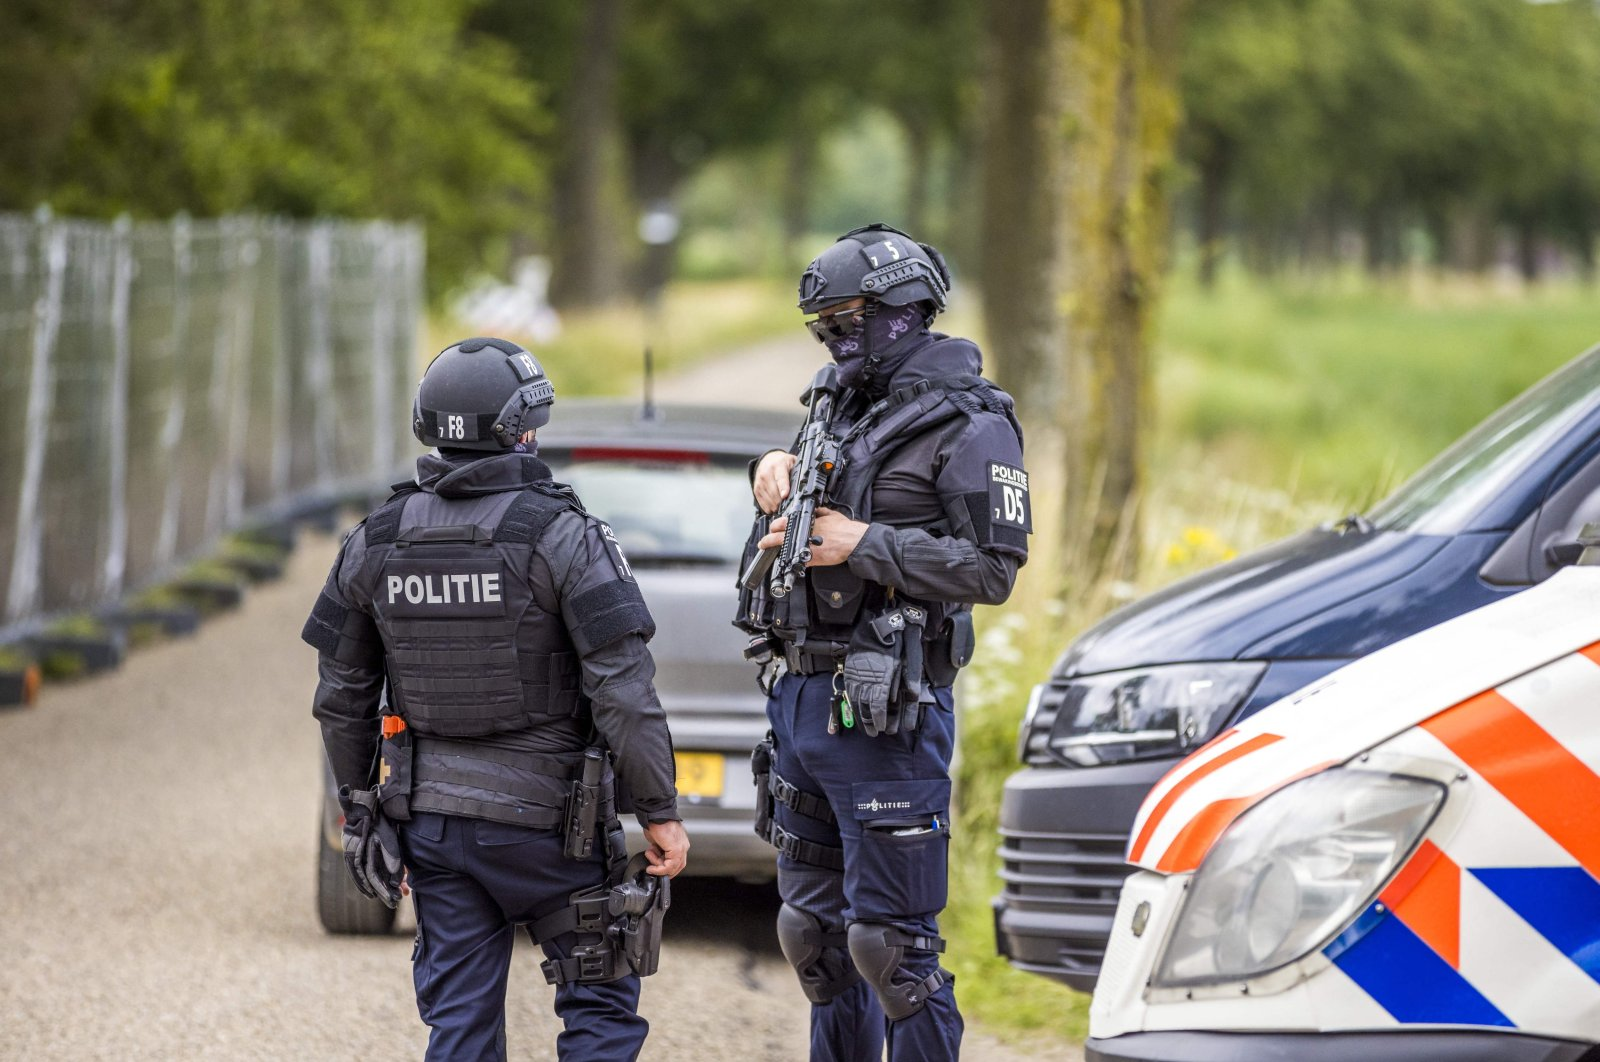 Policemen stand guard at the Hoogbosweg in Nederweert, as the police 'found the largest and most professional production location of crystal meth ever in the Netherlands' it said, July 30, 2021. (AFP File Photo)